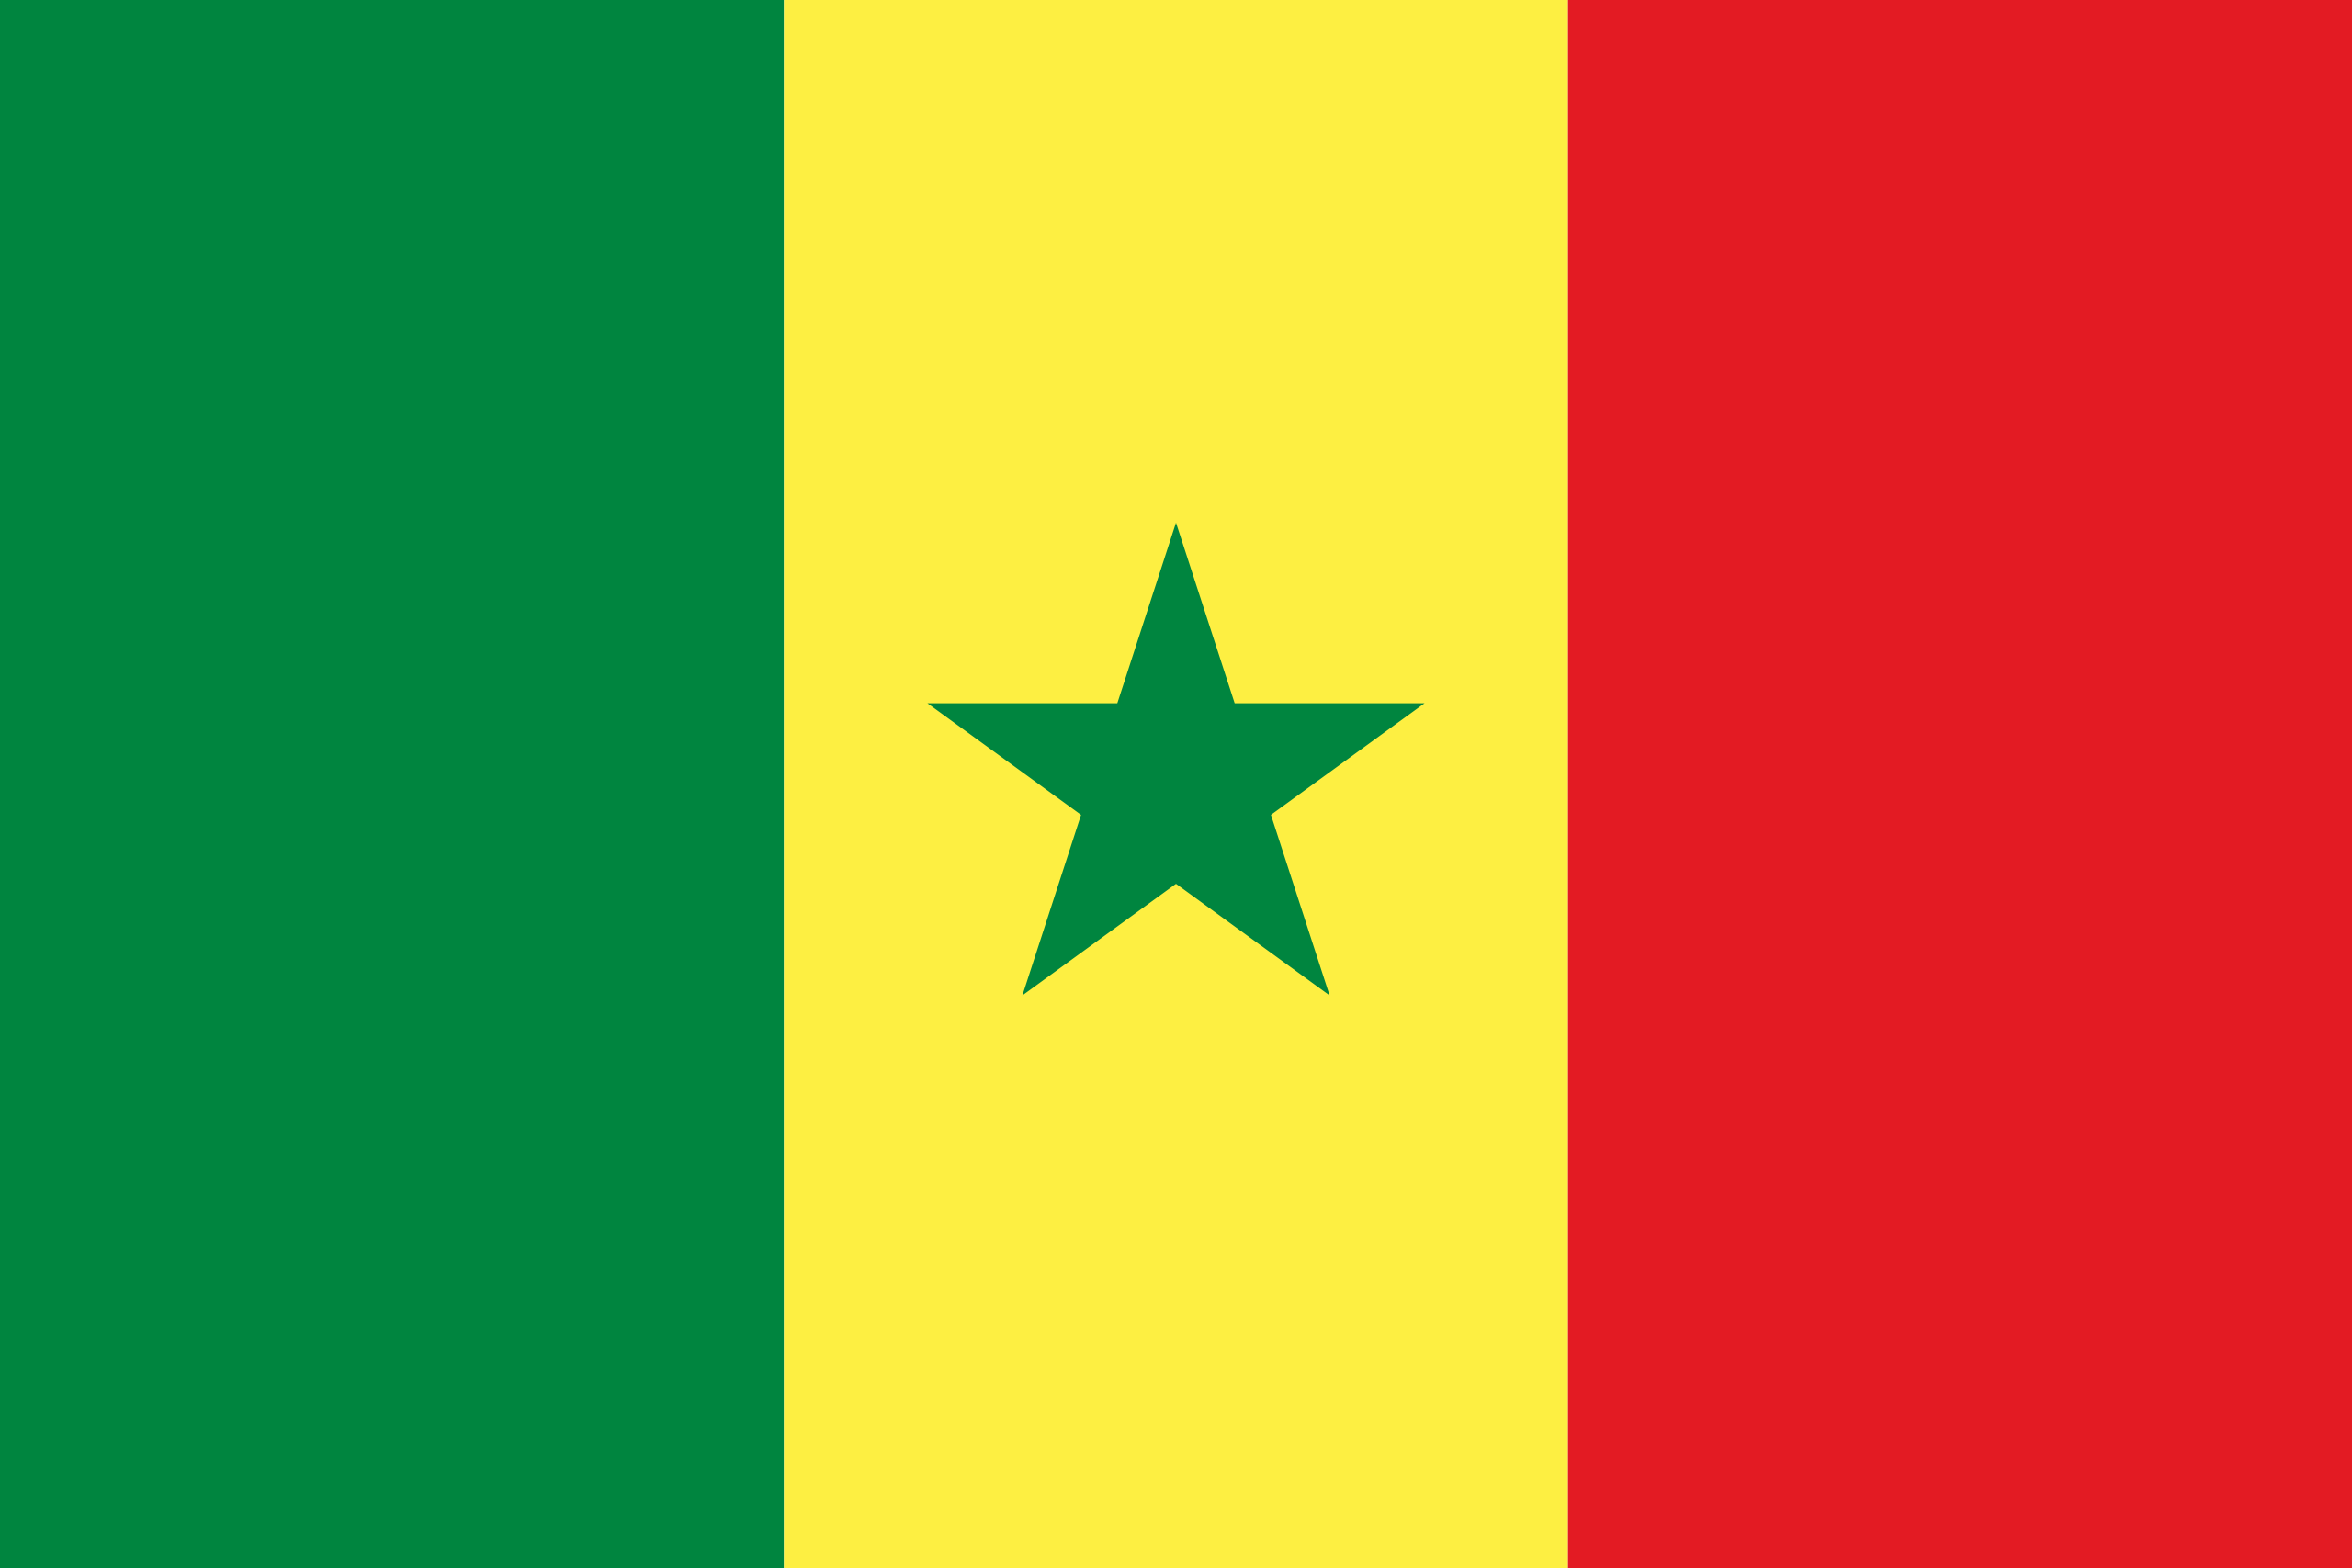 Senegal's flag